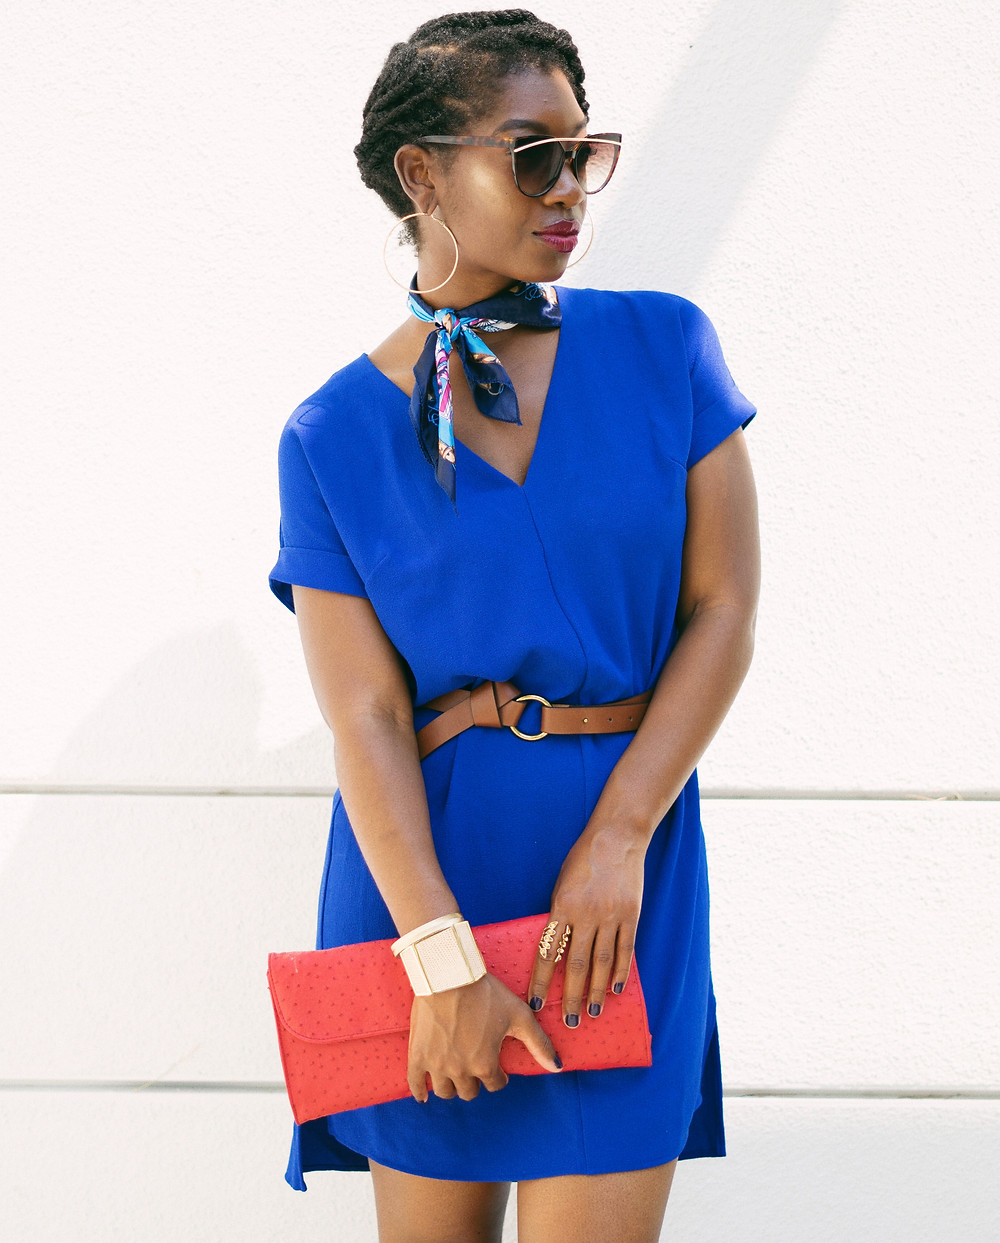 Wearing a chic blue casual dress with a silk square scarf neck tie, The dress is from Target , the Women's Short Sleeve Crepe  Dress (black fashion blogger) Los Angeles Fashion Blogger), What to wear in your 30's, The scarf neck tie trend 2018